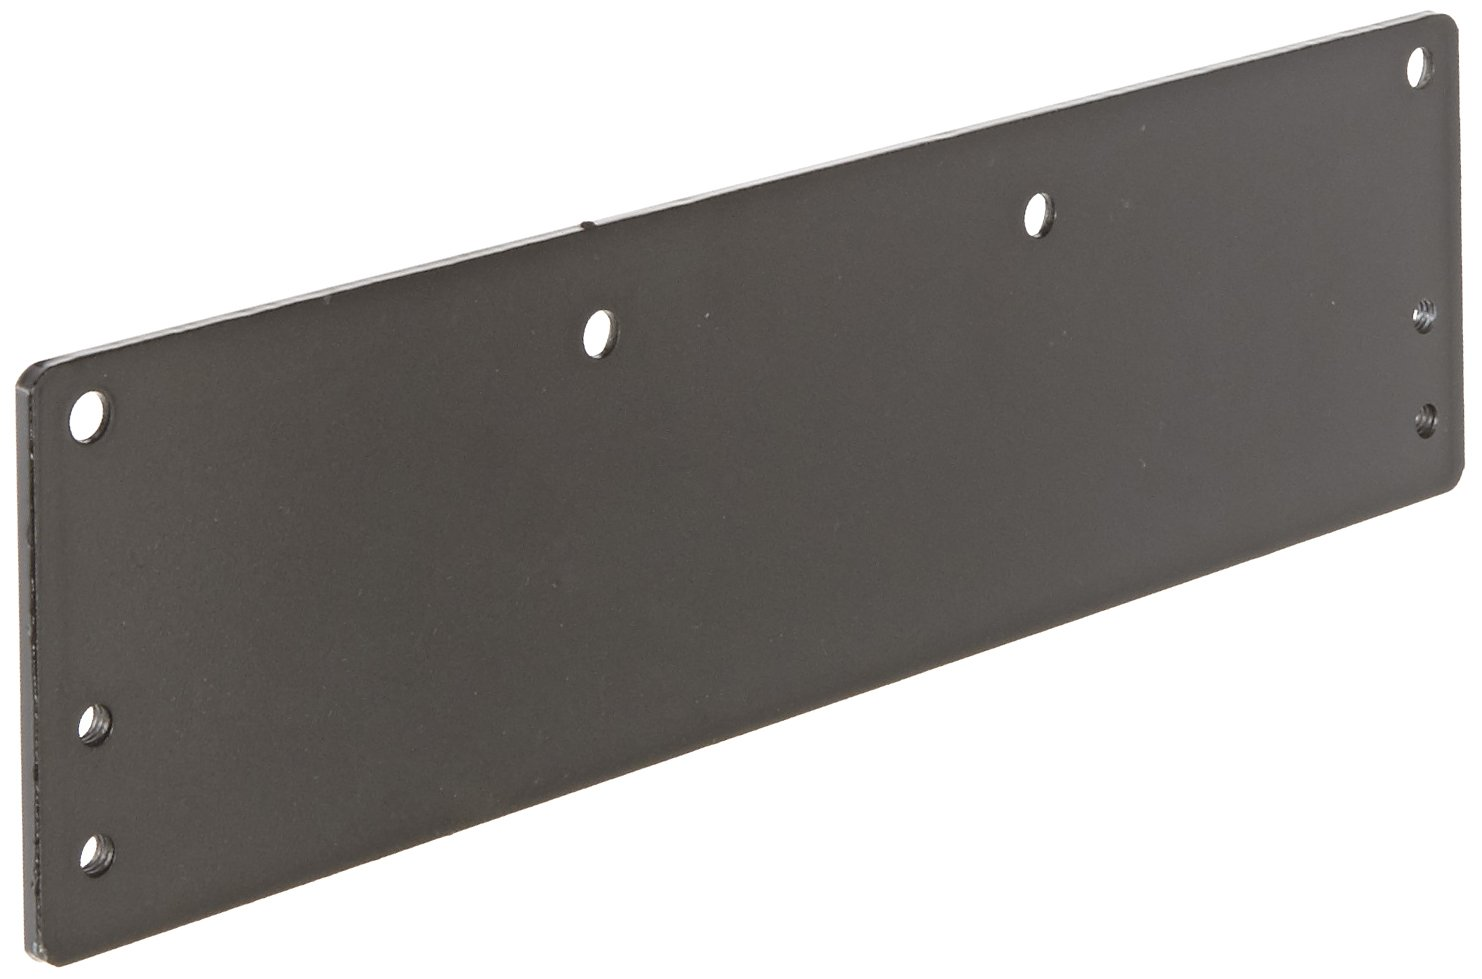 Stanley Commercial Hardware Large Drop Plate Kit for QDC200 Series Heavy Duty Door Closers, Pull and Push, 3.47'' Width, 12.97'' Height, Painted